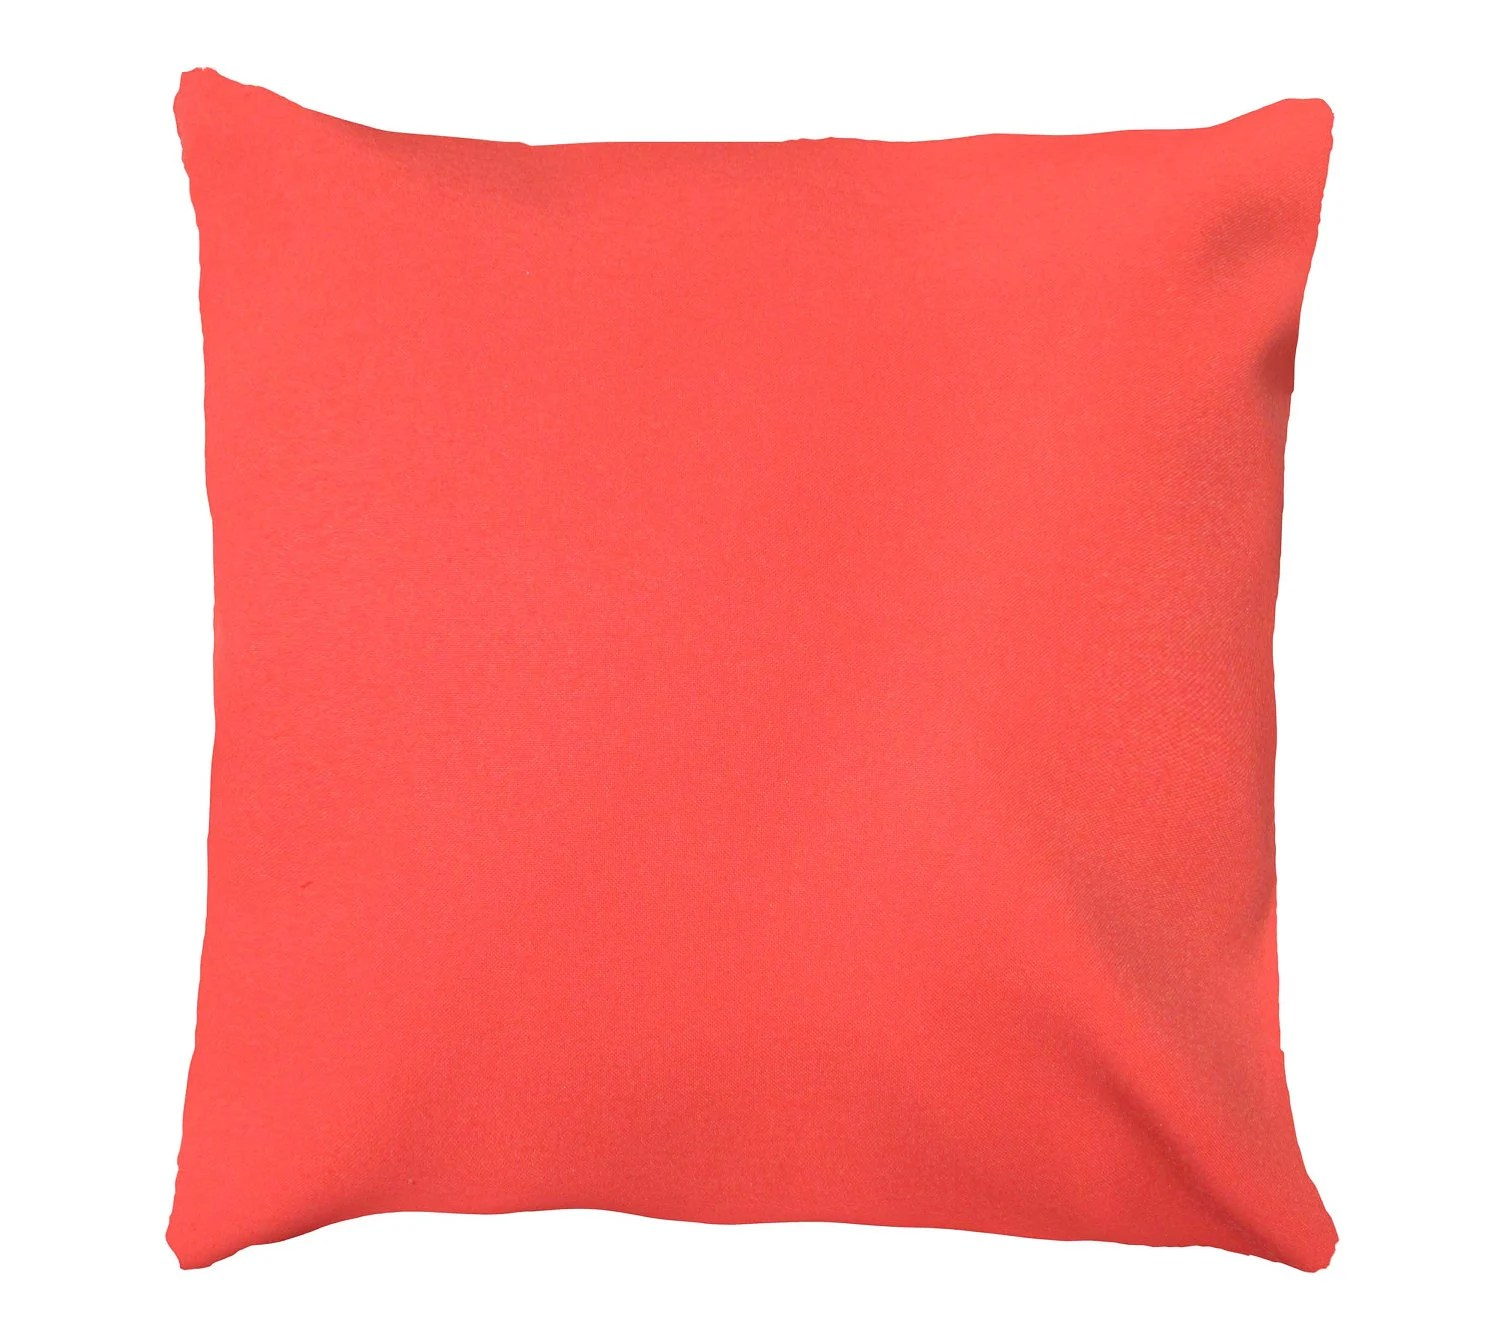 Coral Throw Pillow Cover Pillow Cover Coral Solid Pillow